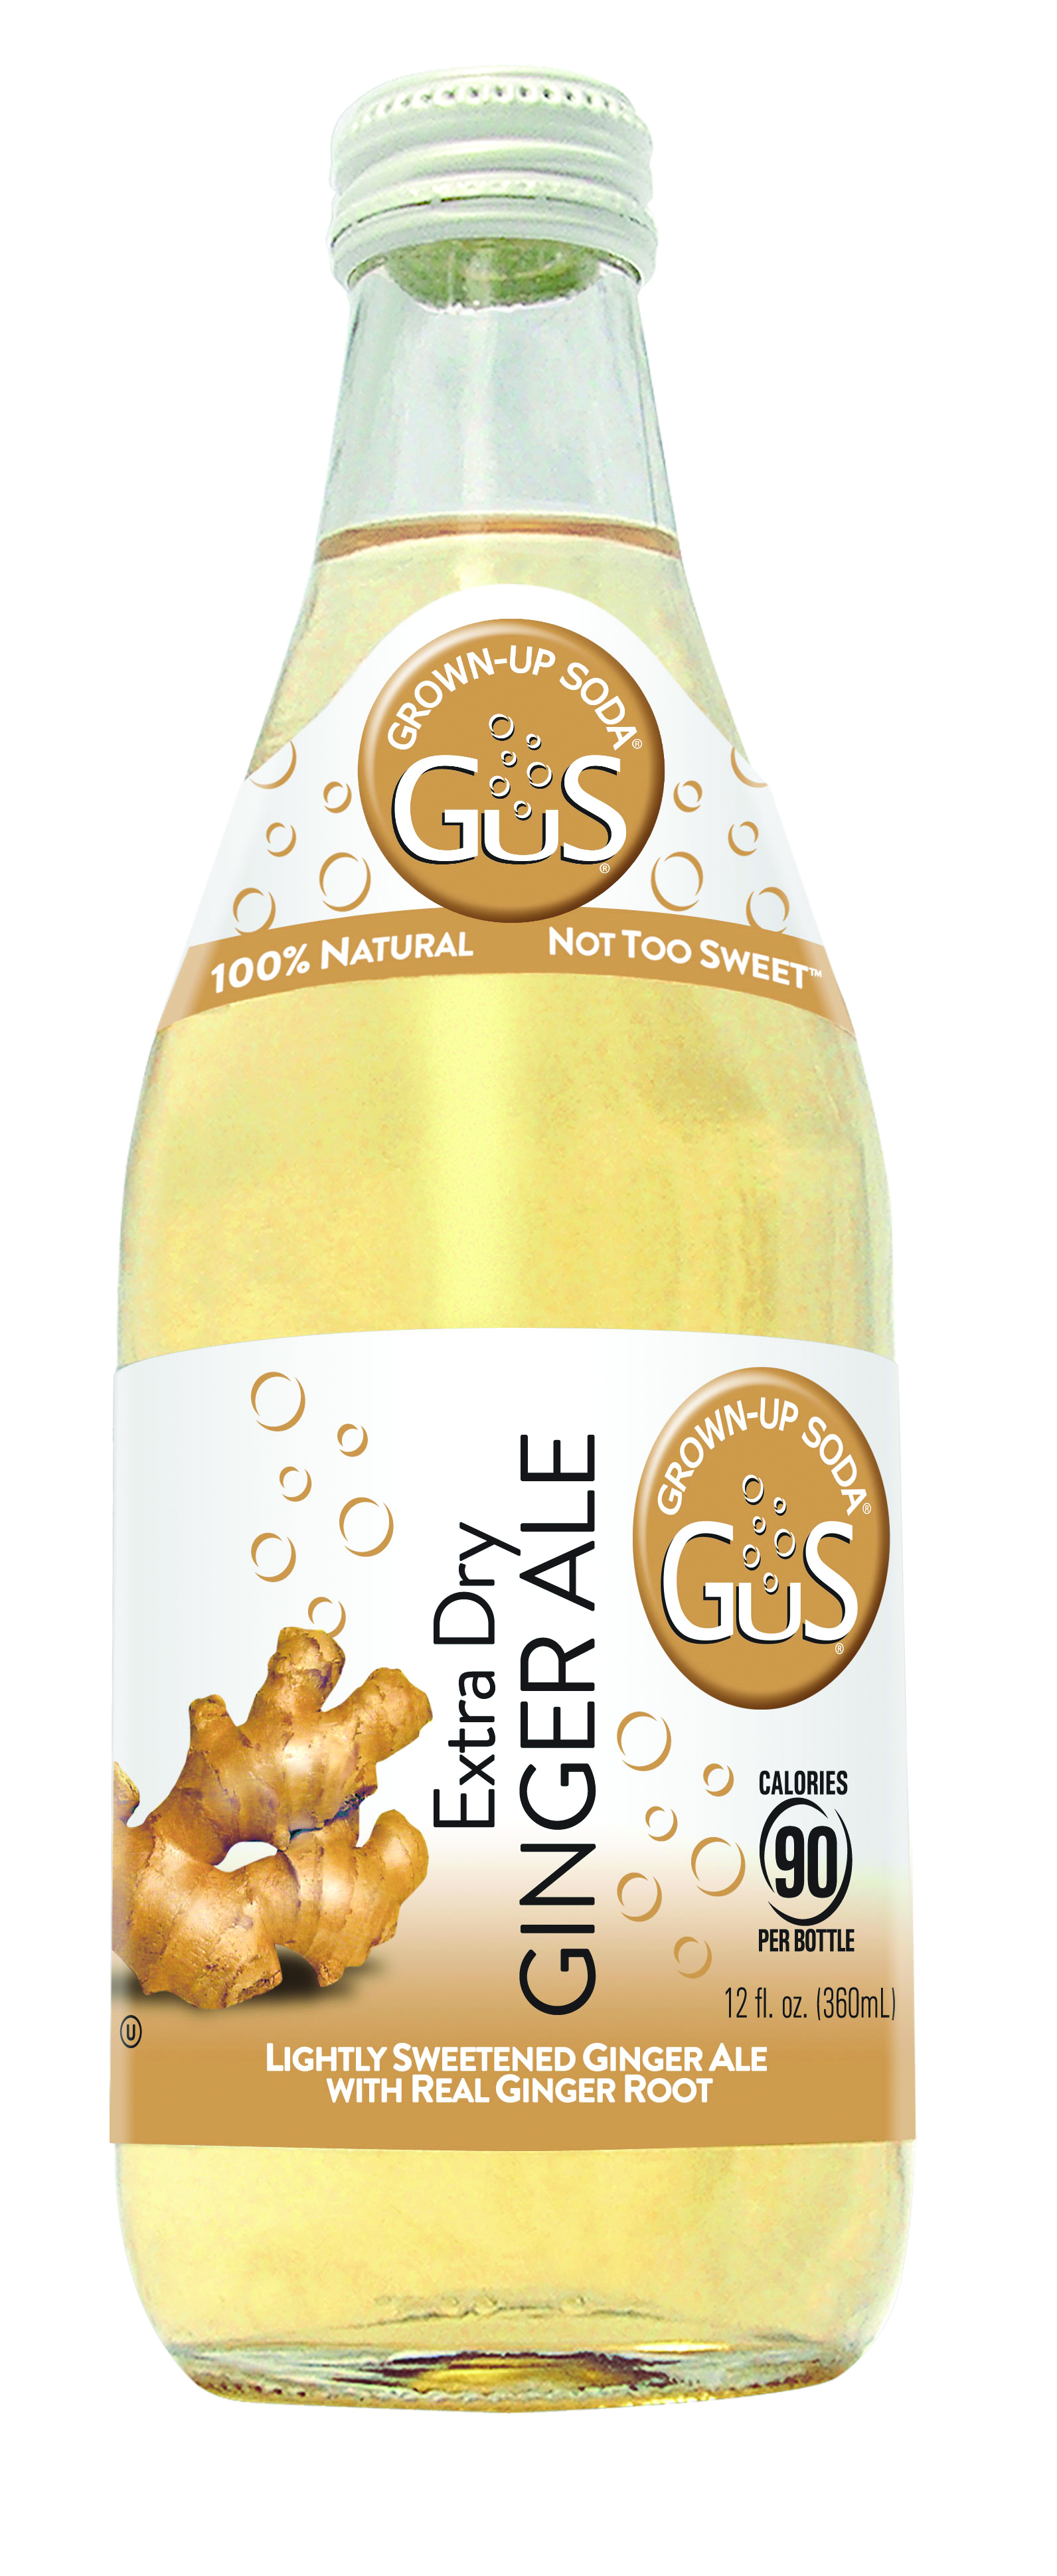 GuS Soda Ginger Ale bottle